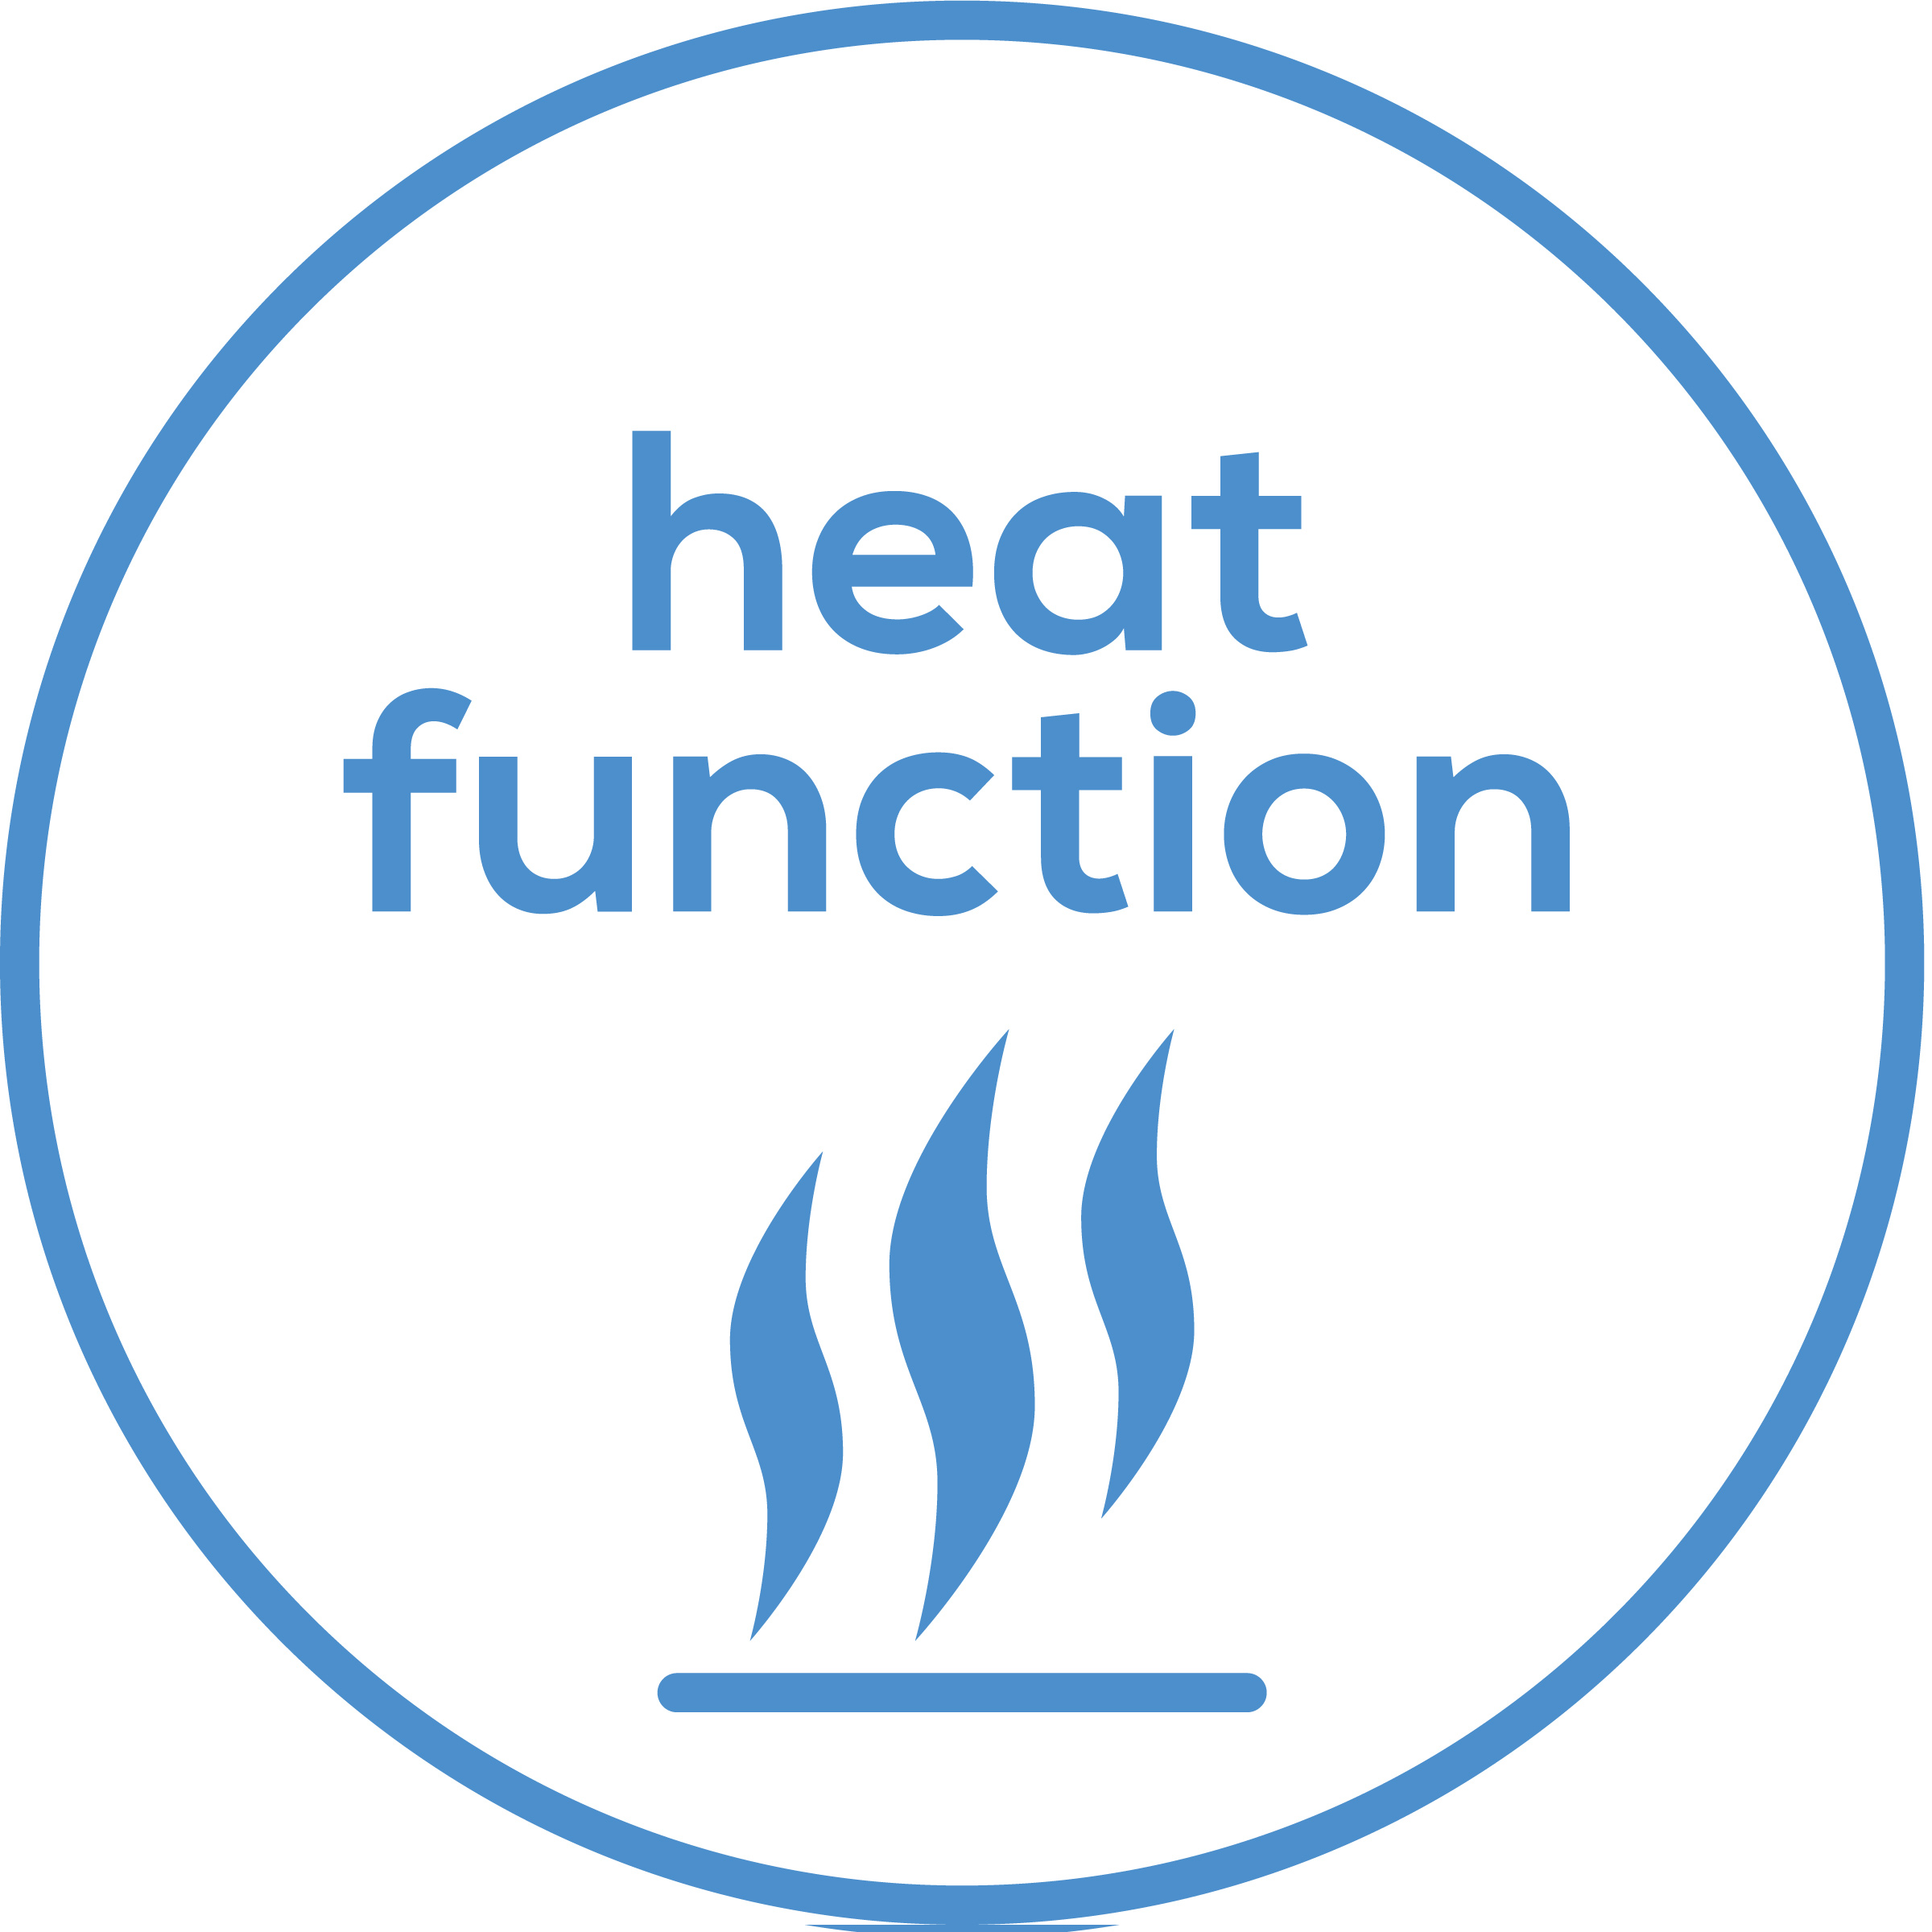 Heat function Heat function Combination of heat and TENS